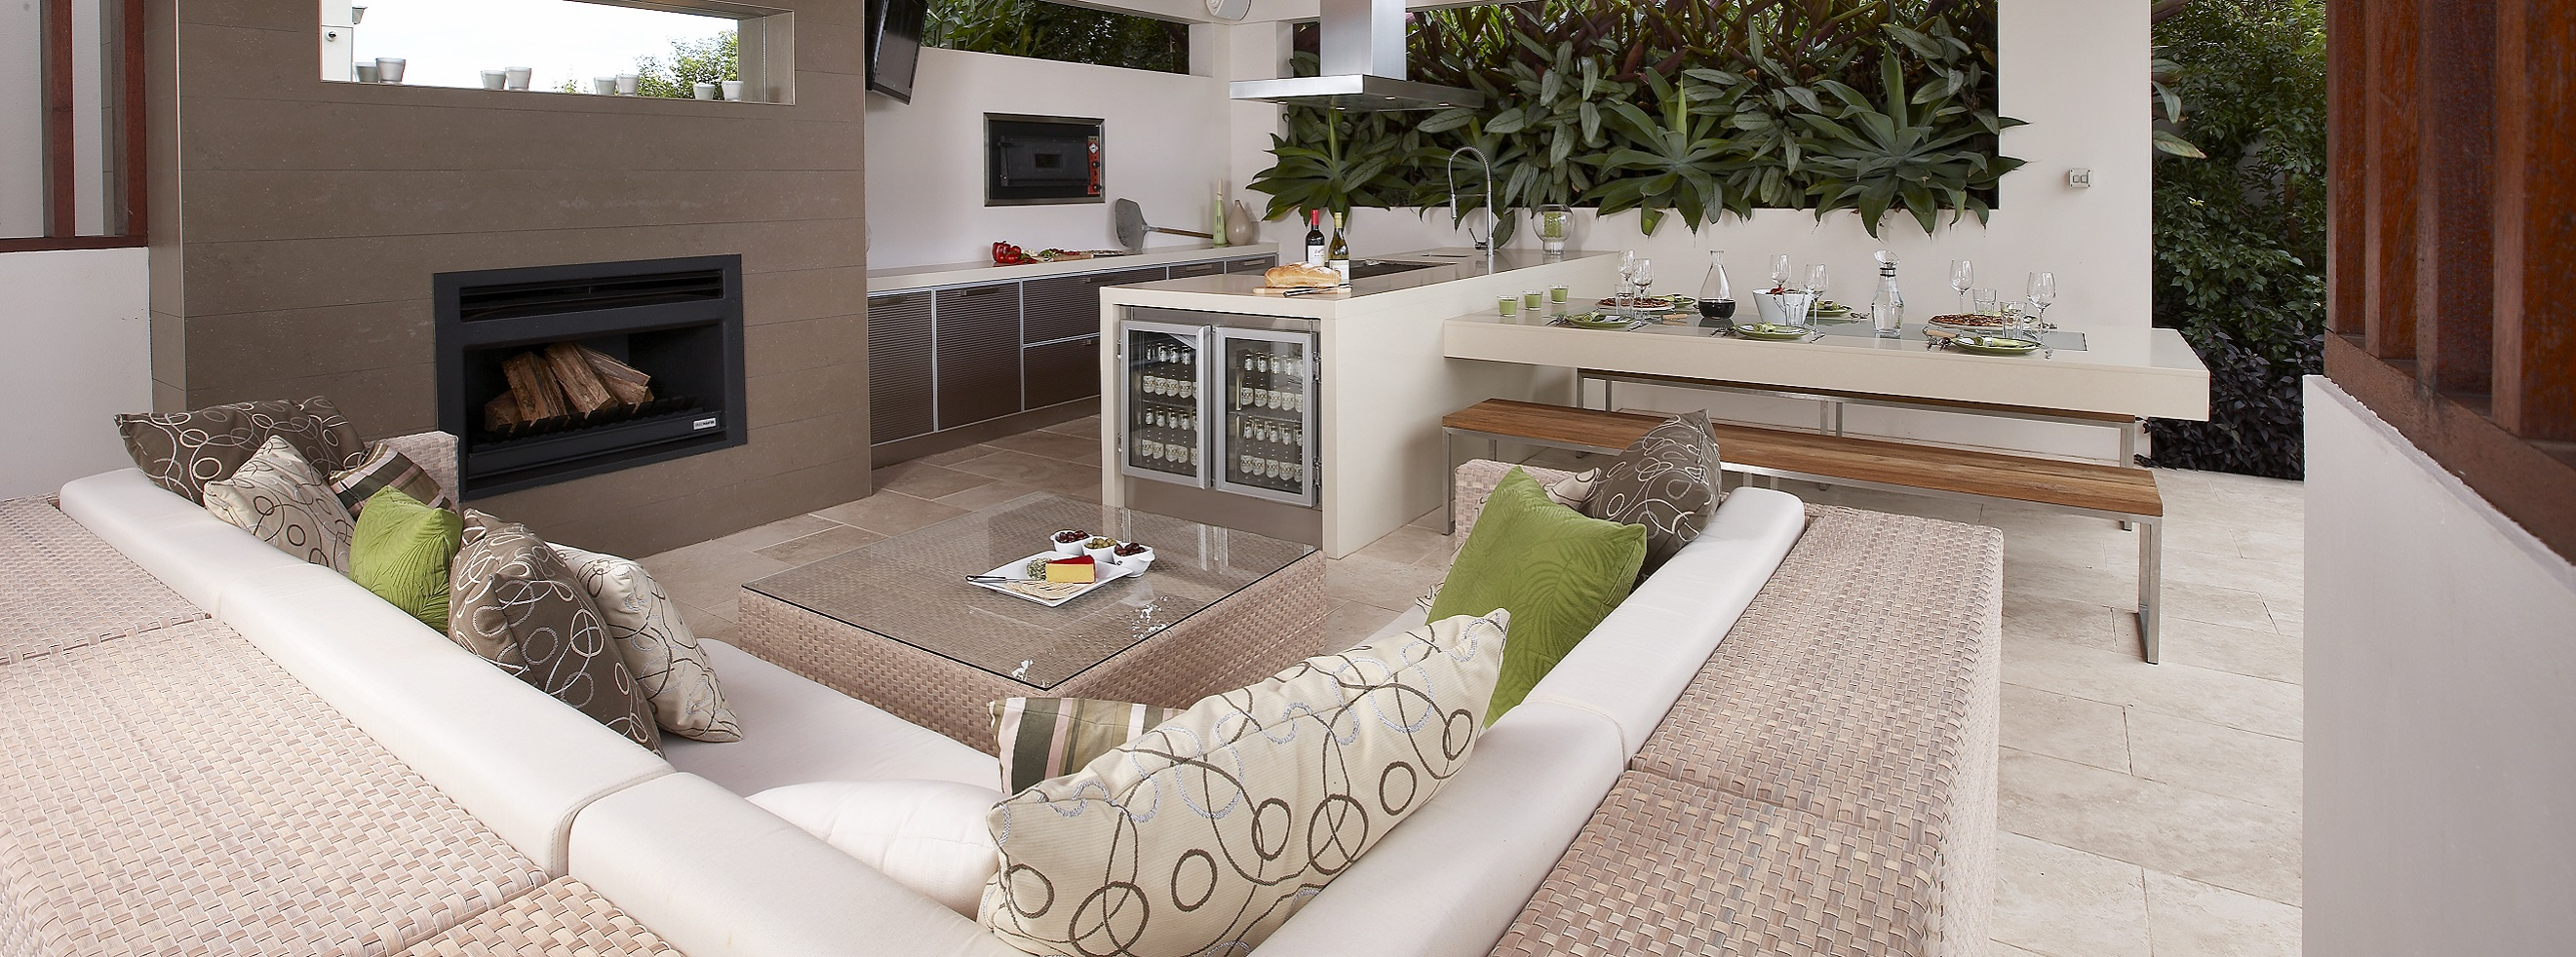 Outdoor Kitchens Custom Designed And Built In Kitchen Cabinets Australian Alfresco Outdoor